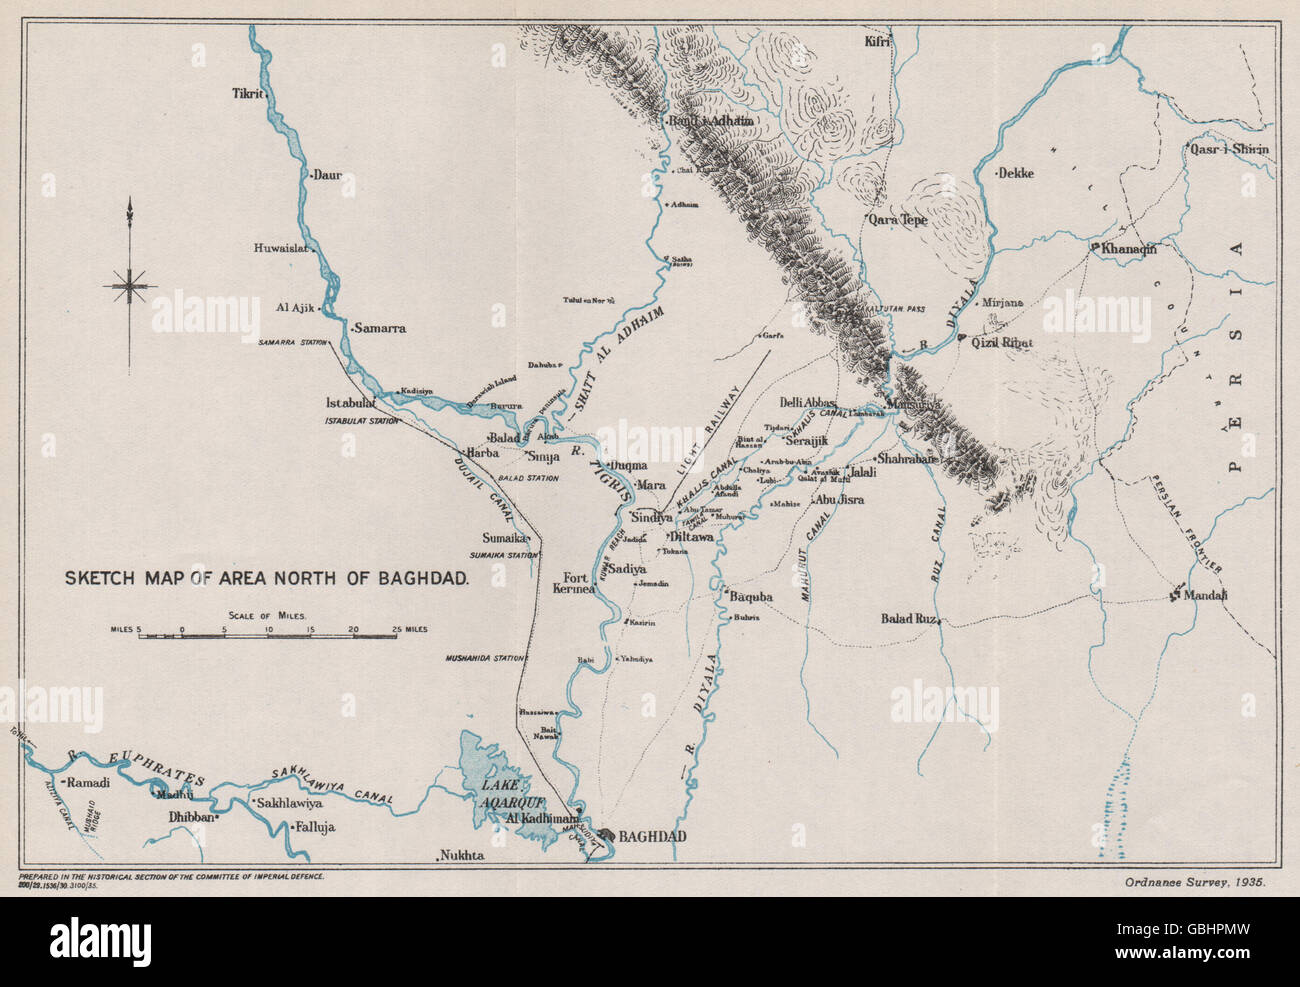 first world war sketch map of area north of baghdad mesopotamia iraq 1935